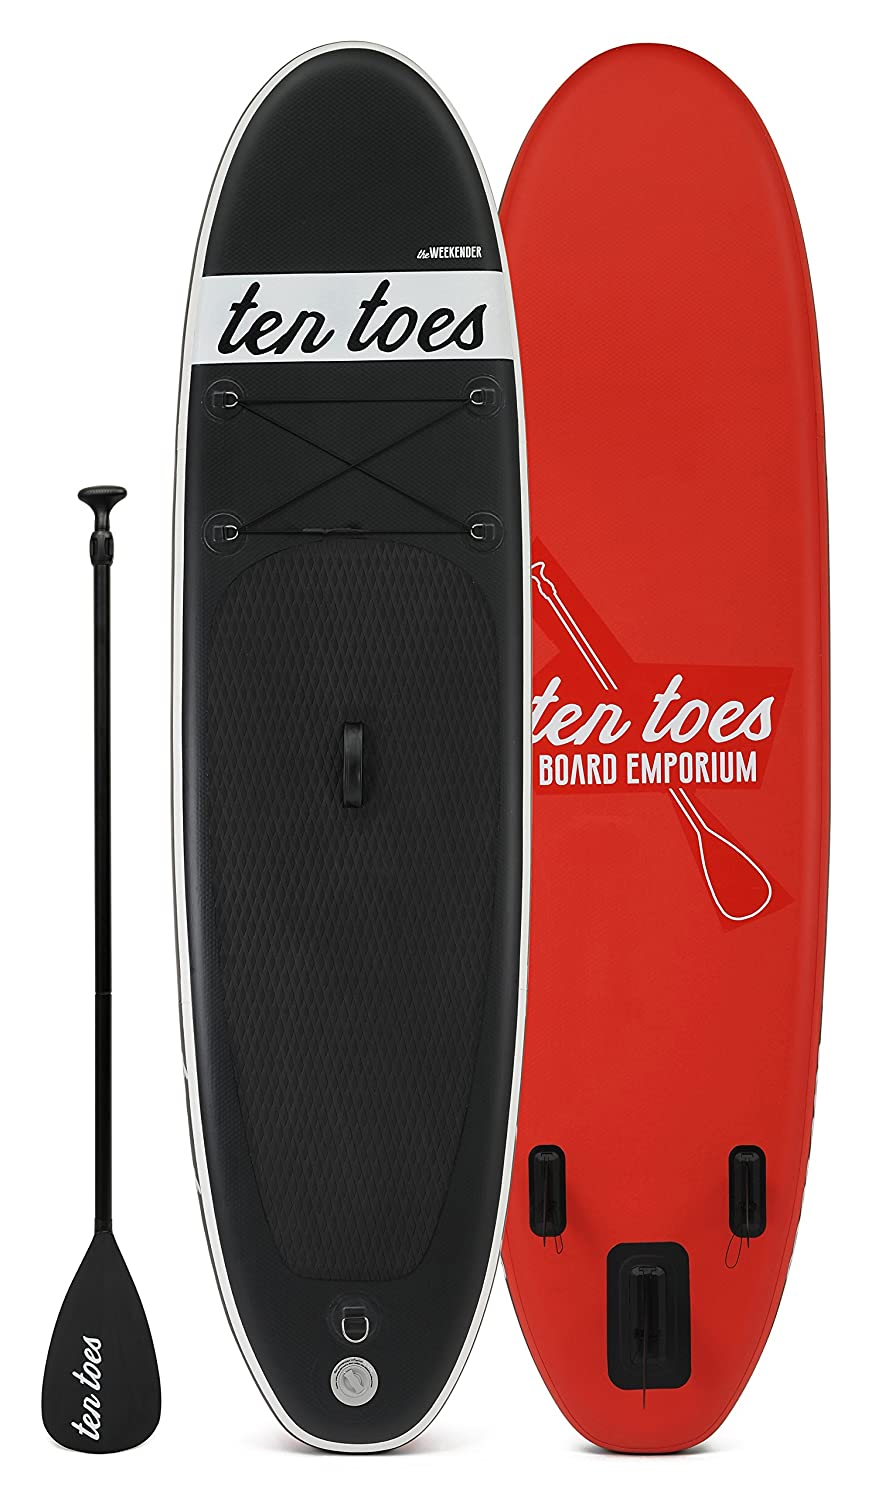 Amazon #DealOfTheDay: Save 25% Off Select Paddle Boards and More